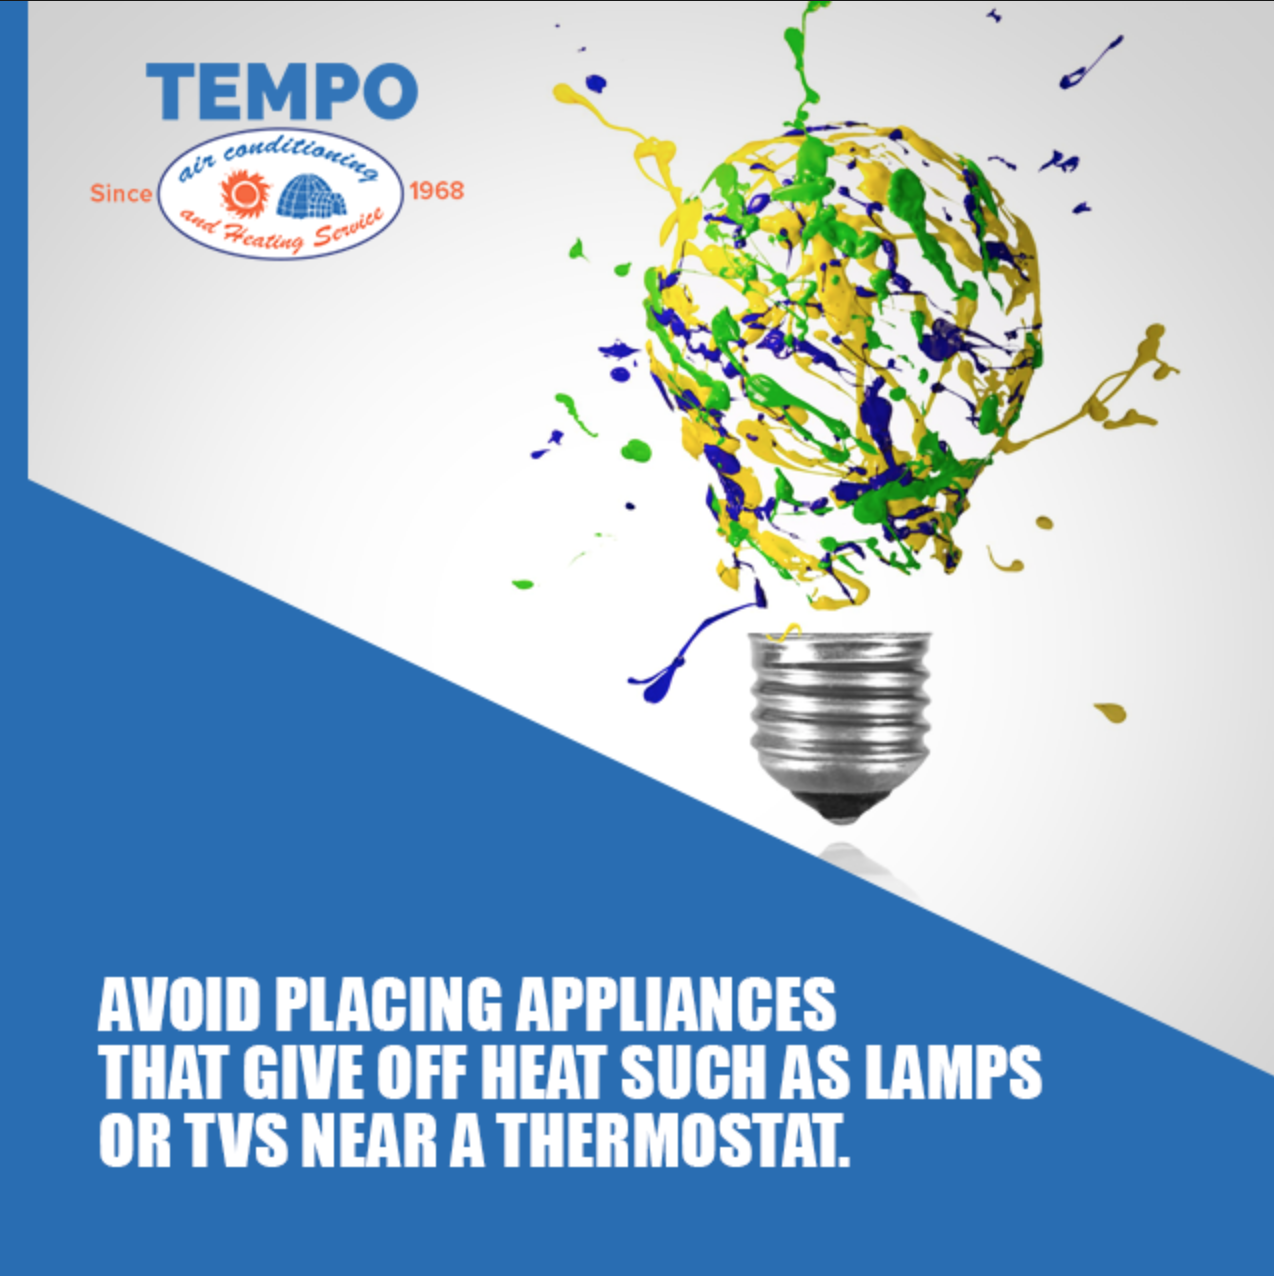 Tempo Air Conditioning image 1